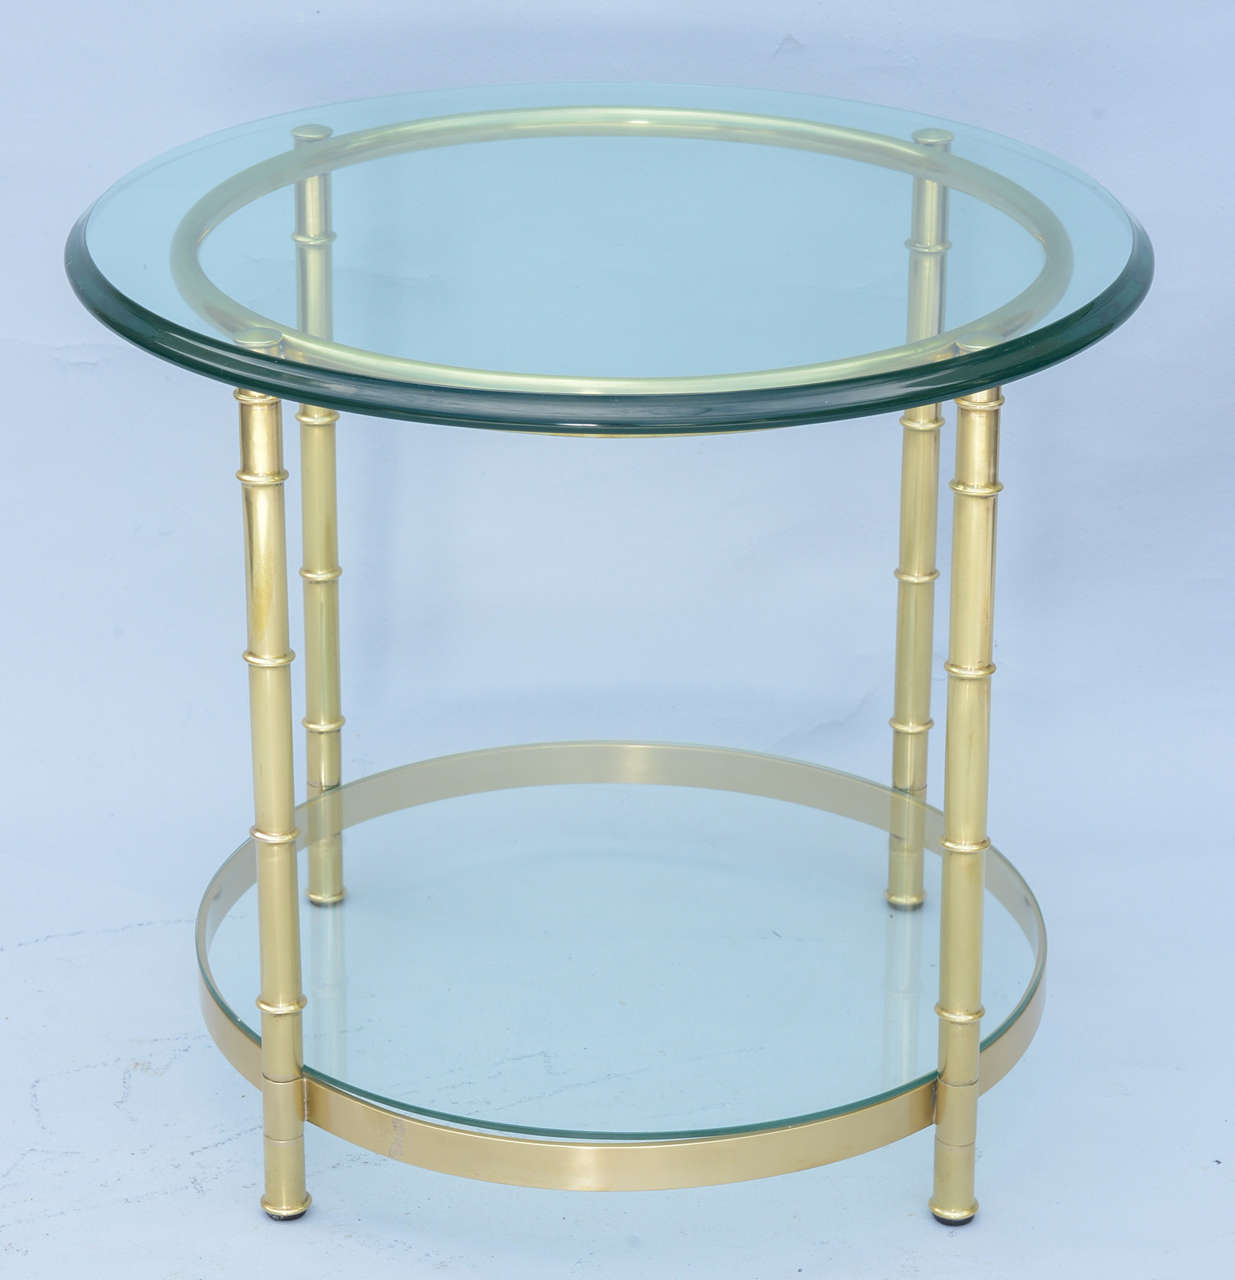 End or side table, of polished brass, its round glass top raised on faux bamboo legs, joined by ring apron and shelf-stretcher.  Stock ID: D7191